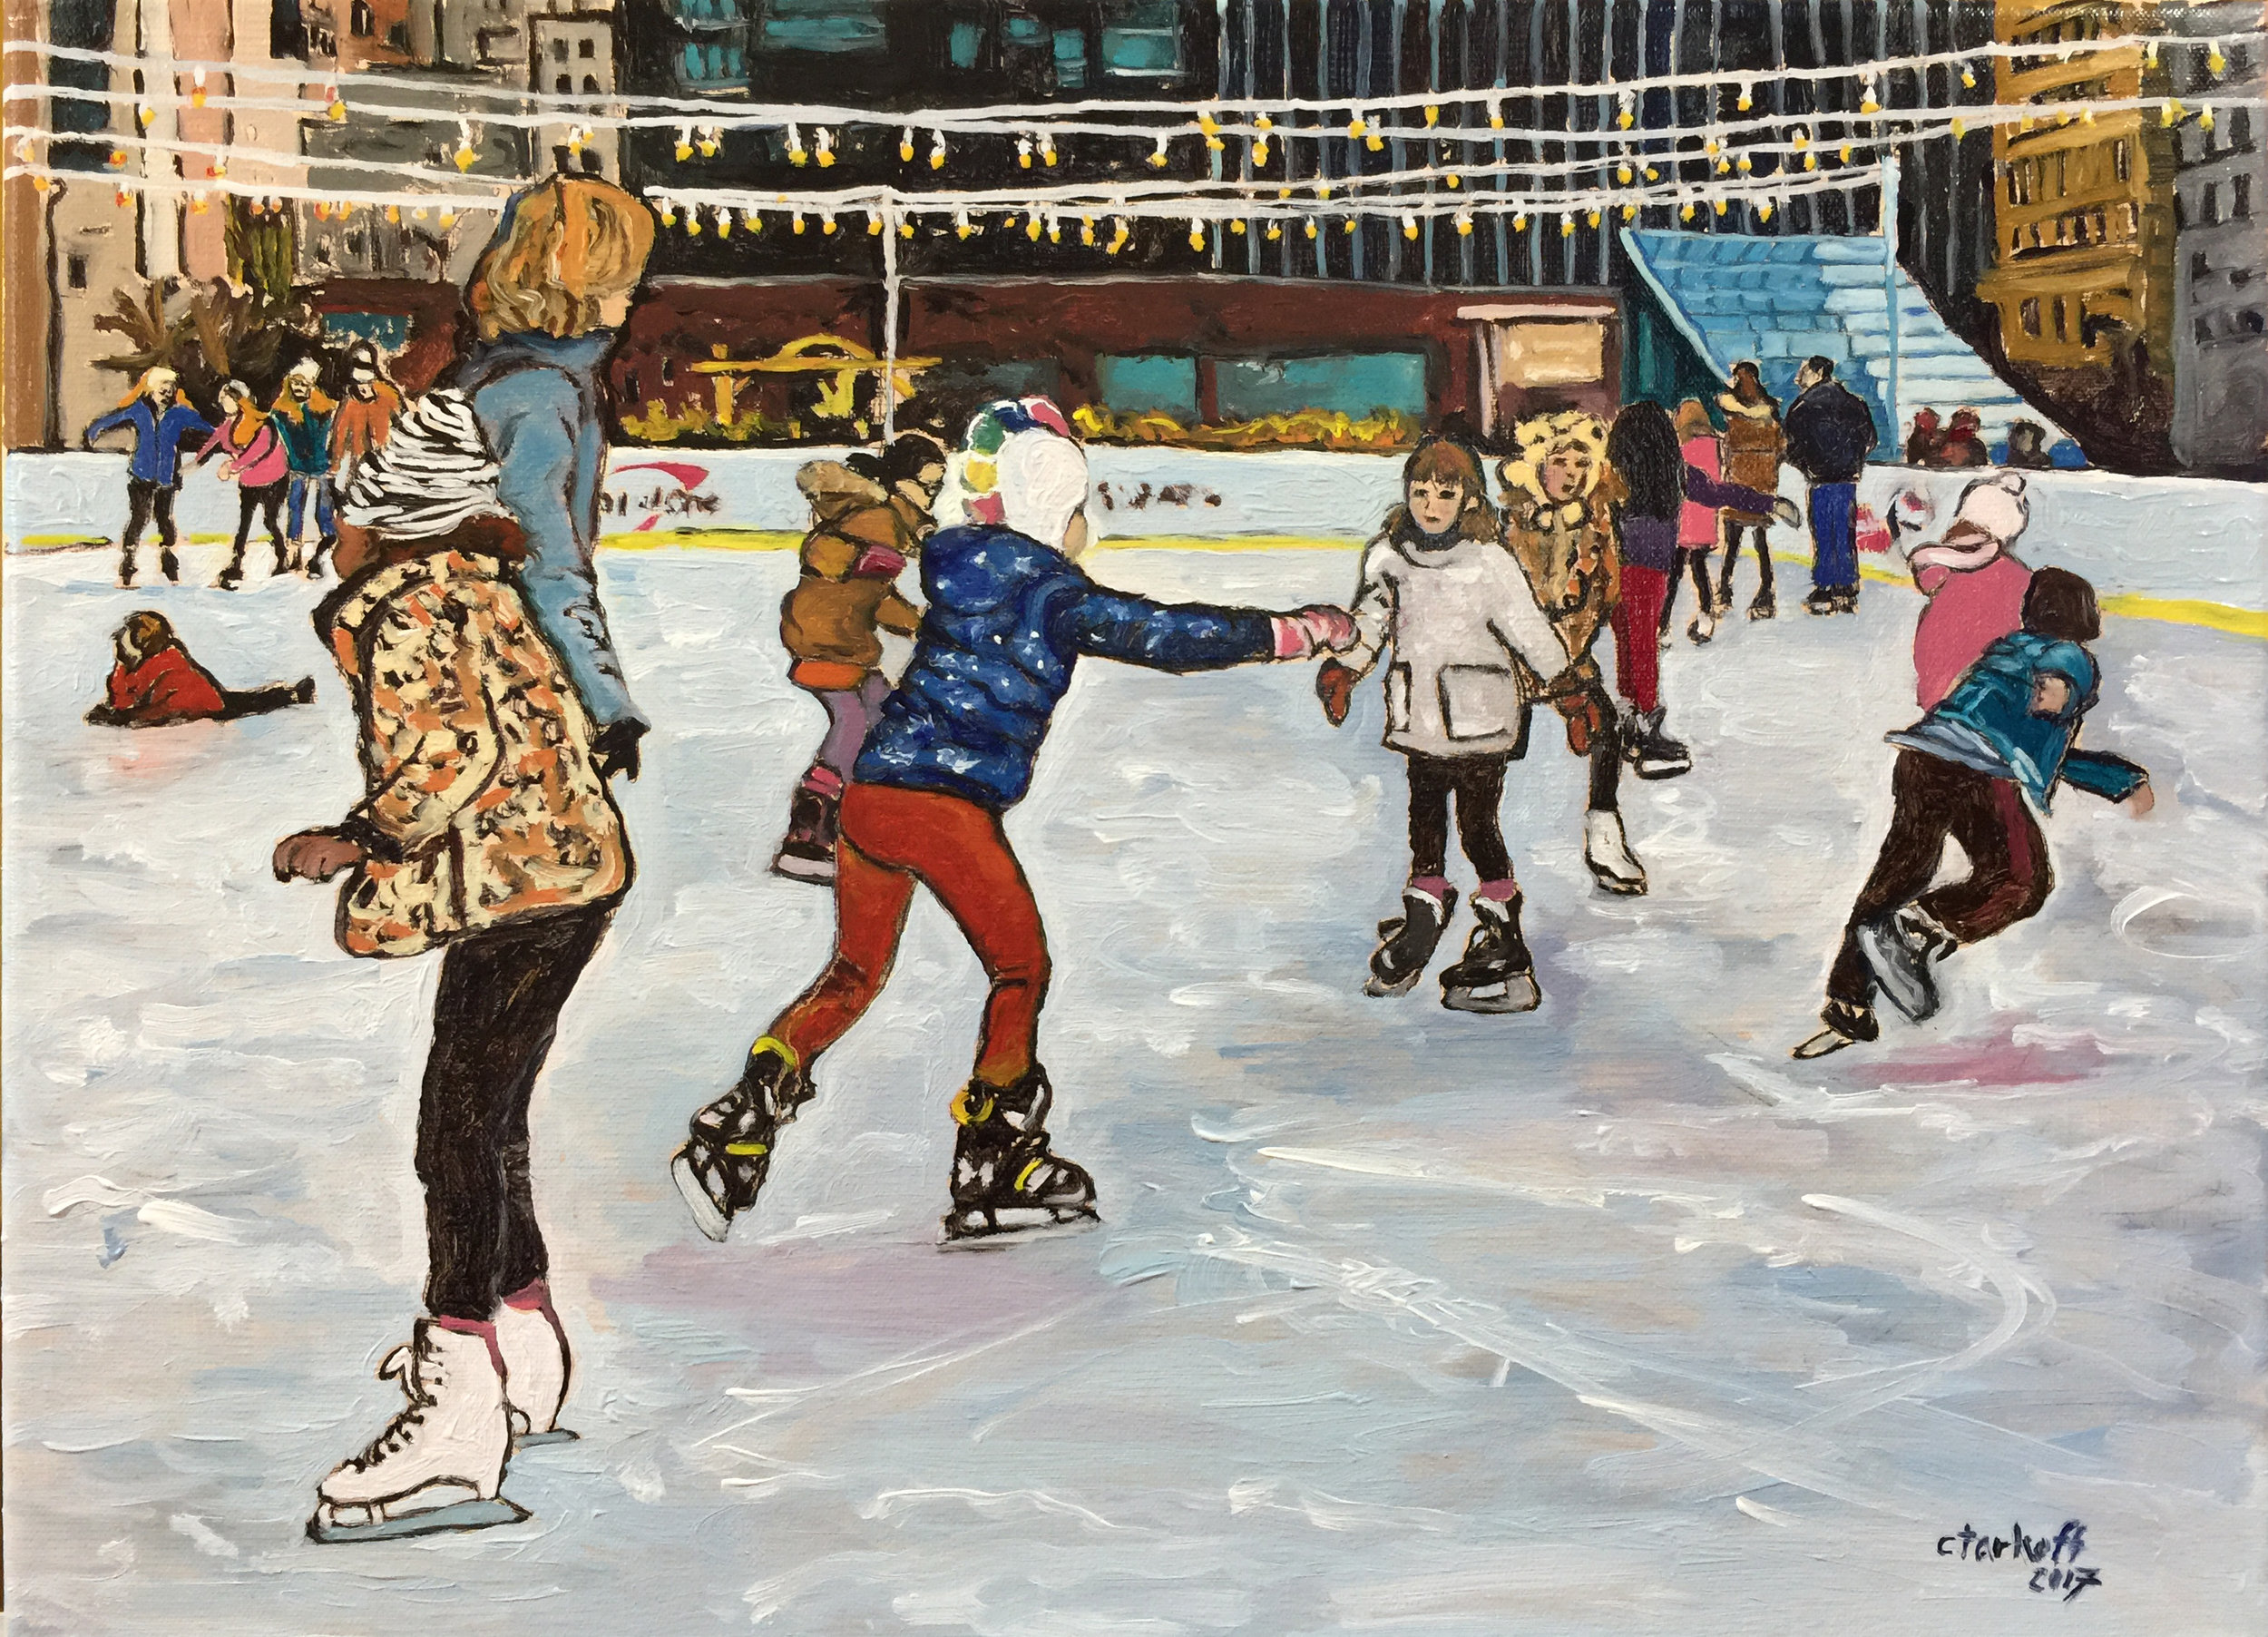 """Philadelphia Street Scene - Rothman Rink-Dilworth Park - """"Ice Skating at Dilworth Park on a Sunday Afternoon"""" - 12x16 inches. Oil on Stretched Canvas."""